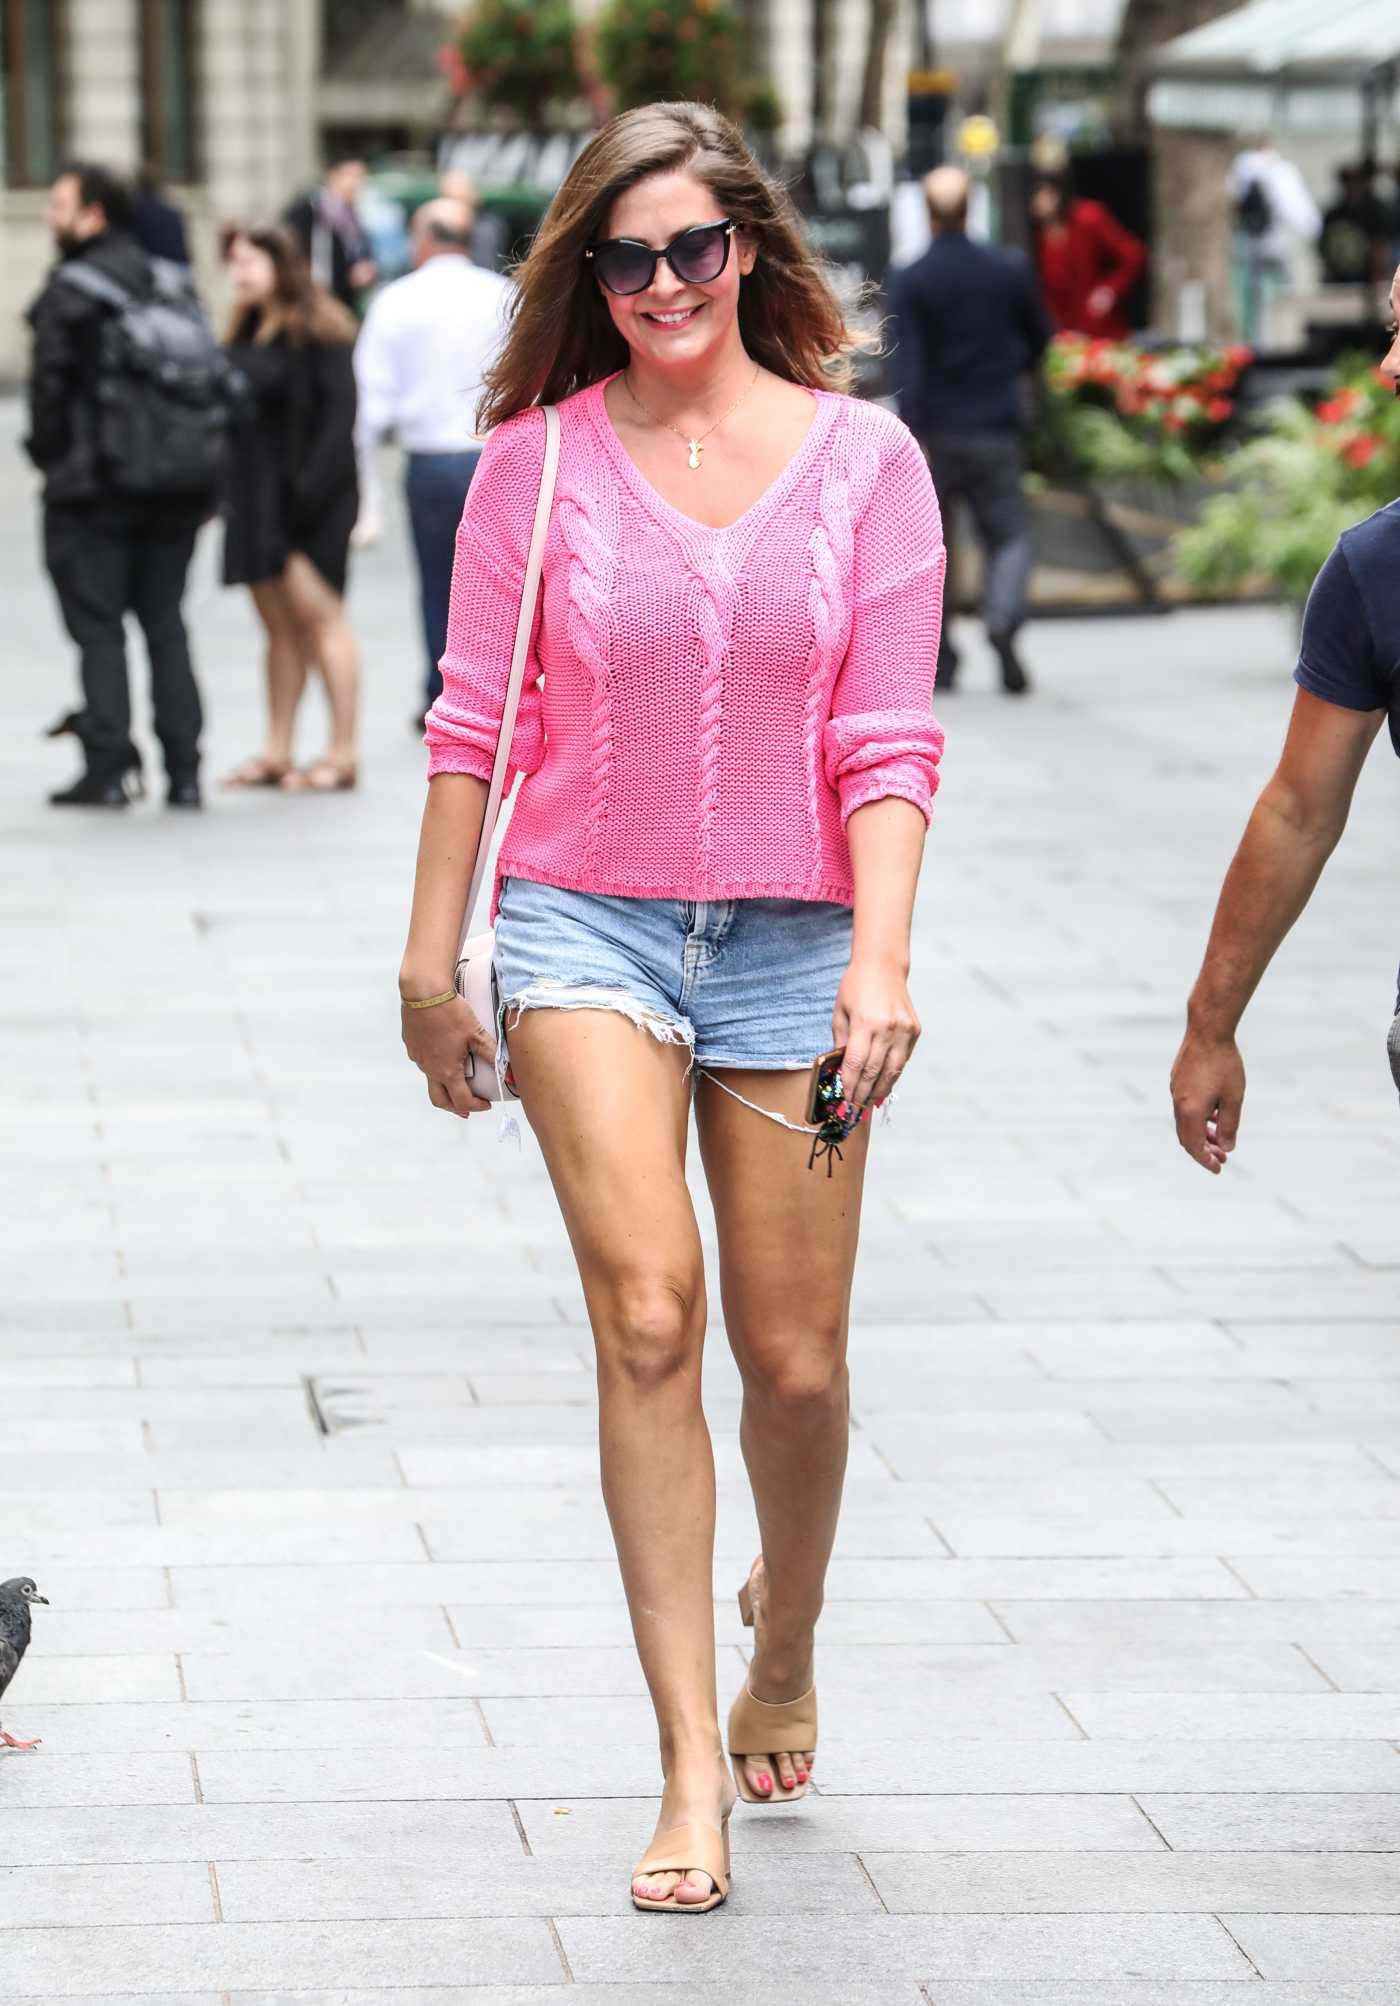 Lucy Horobin in a Knit Pink Blouse Arrives at the Global Radio Studios in London 09/01/2020